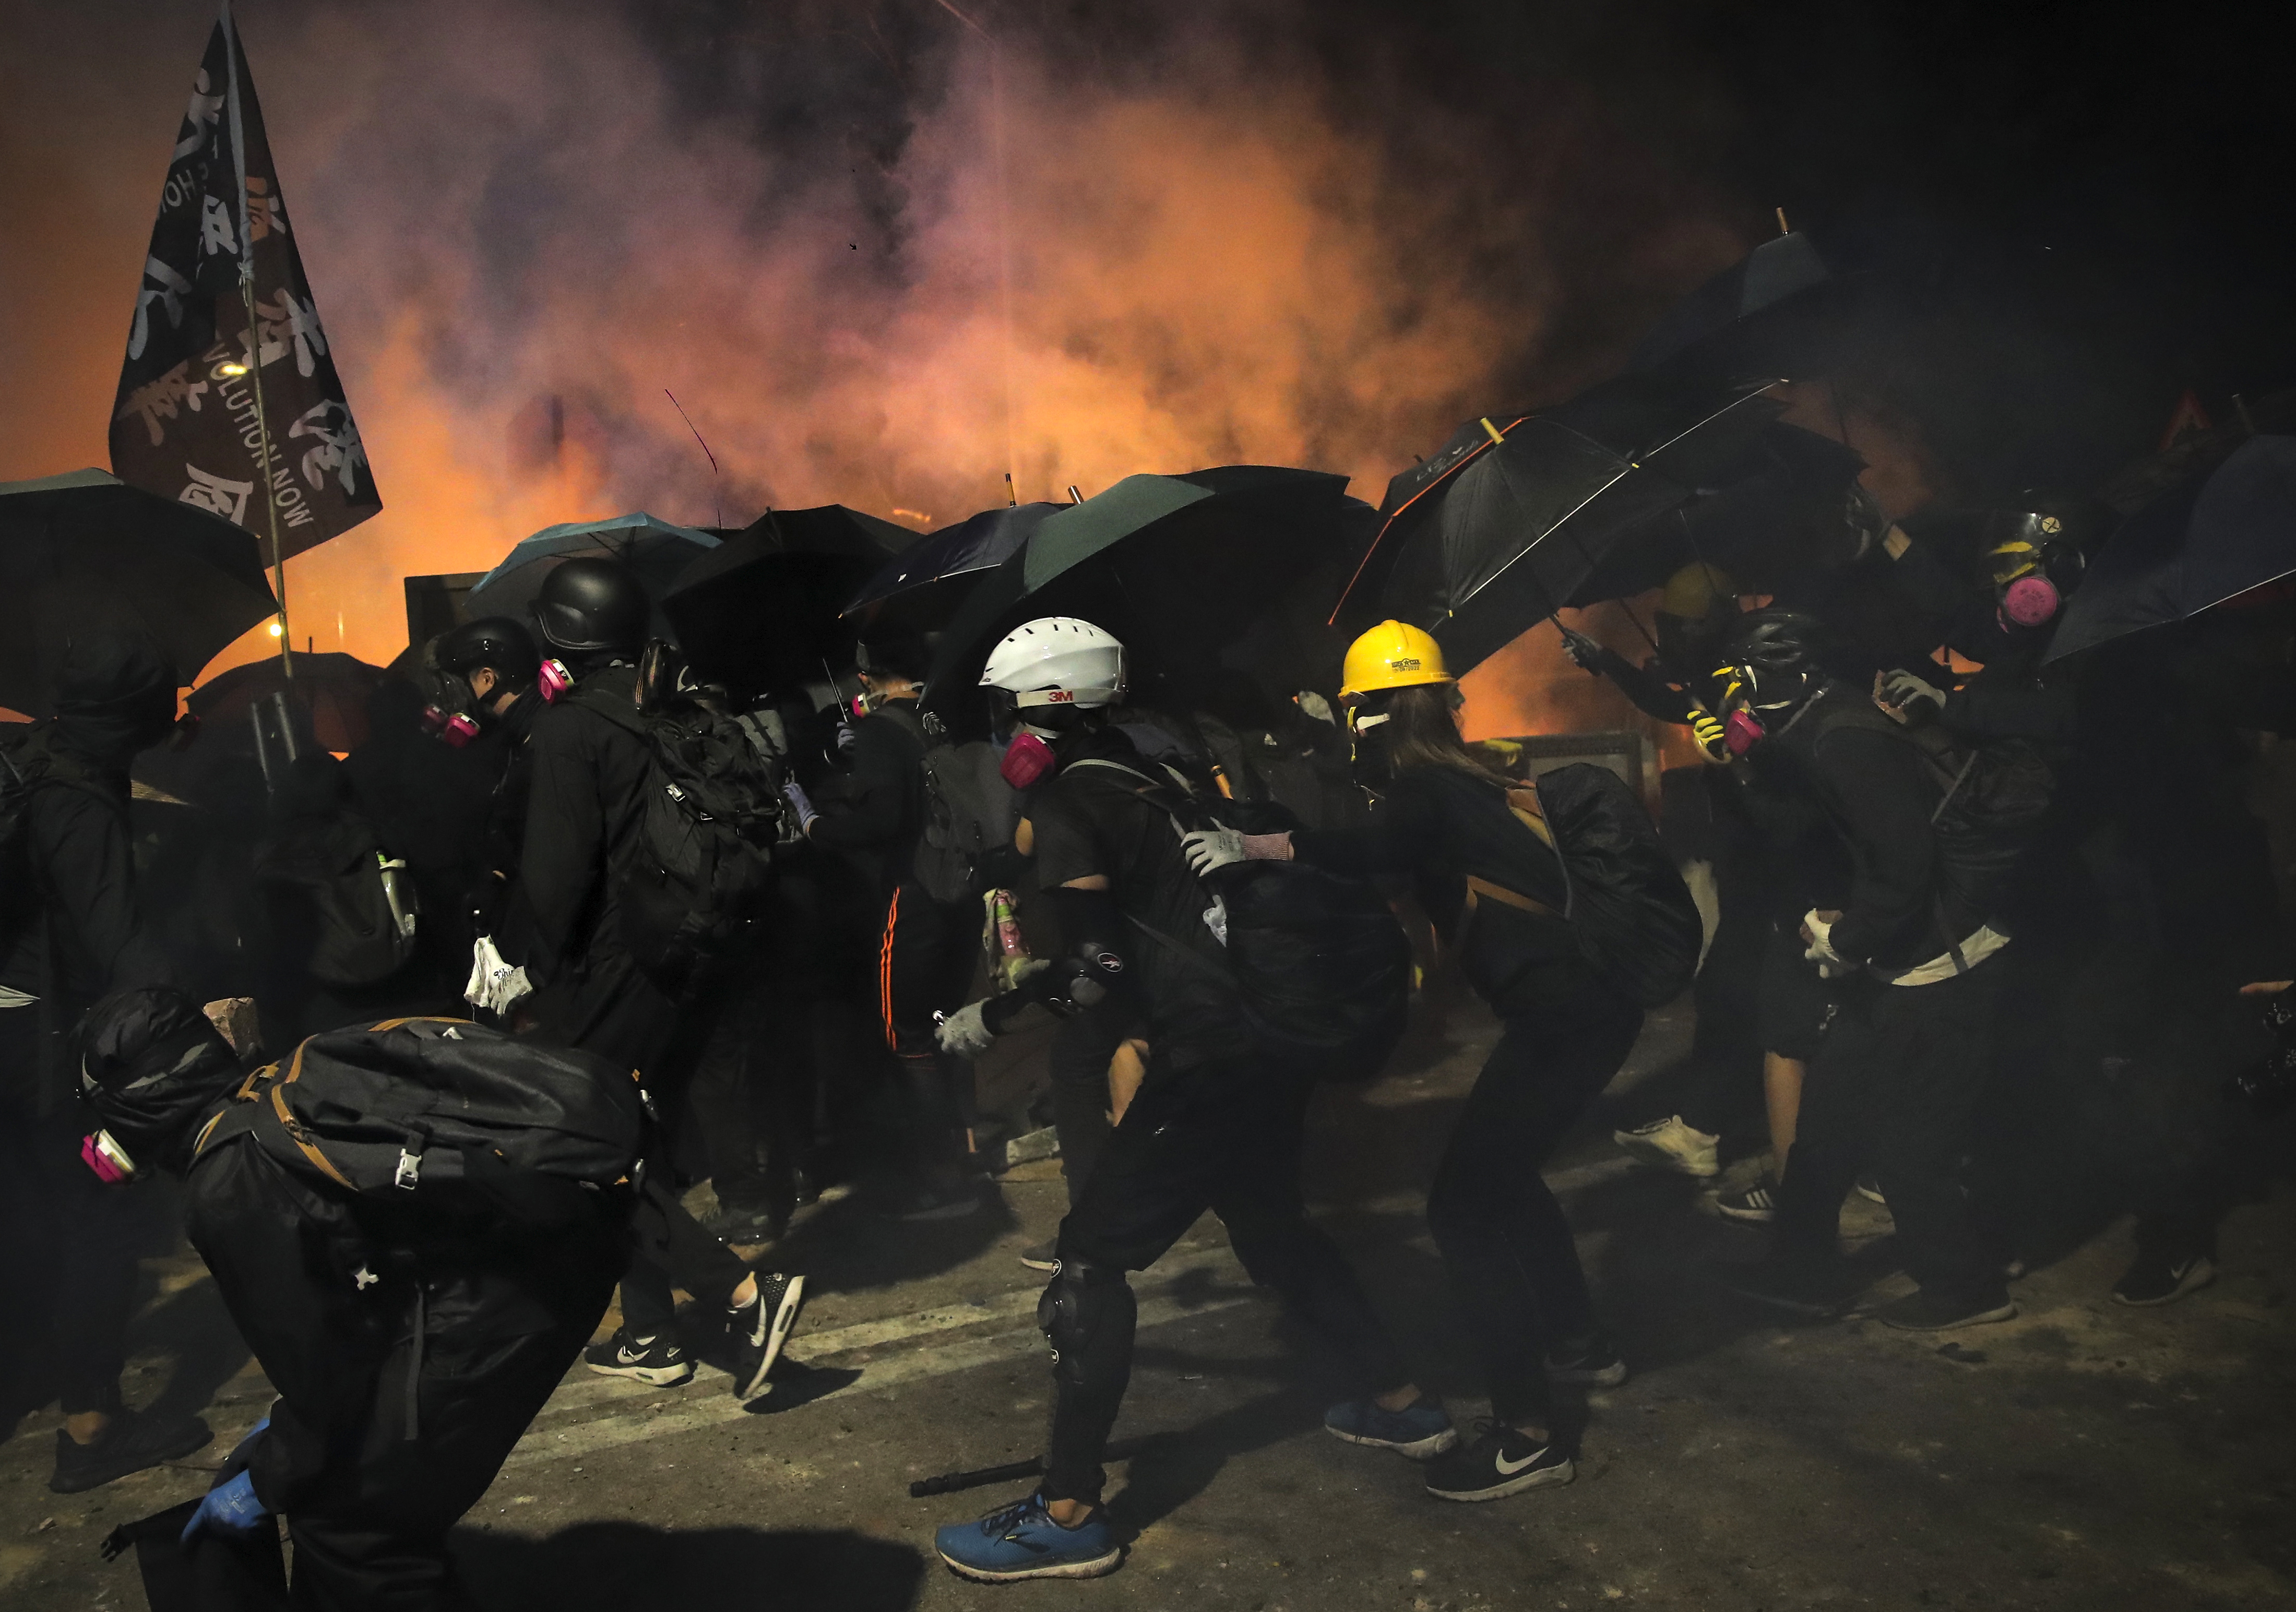 Students use umbrellas as a shields during a clash with police at the Chinese University in Hong Kong, on November 12, 2019